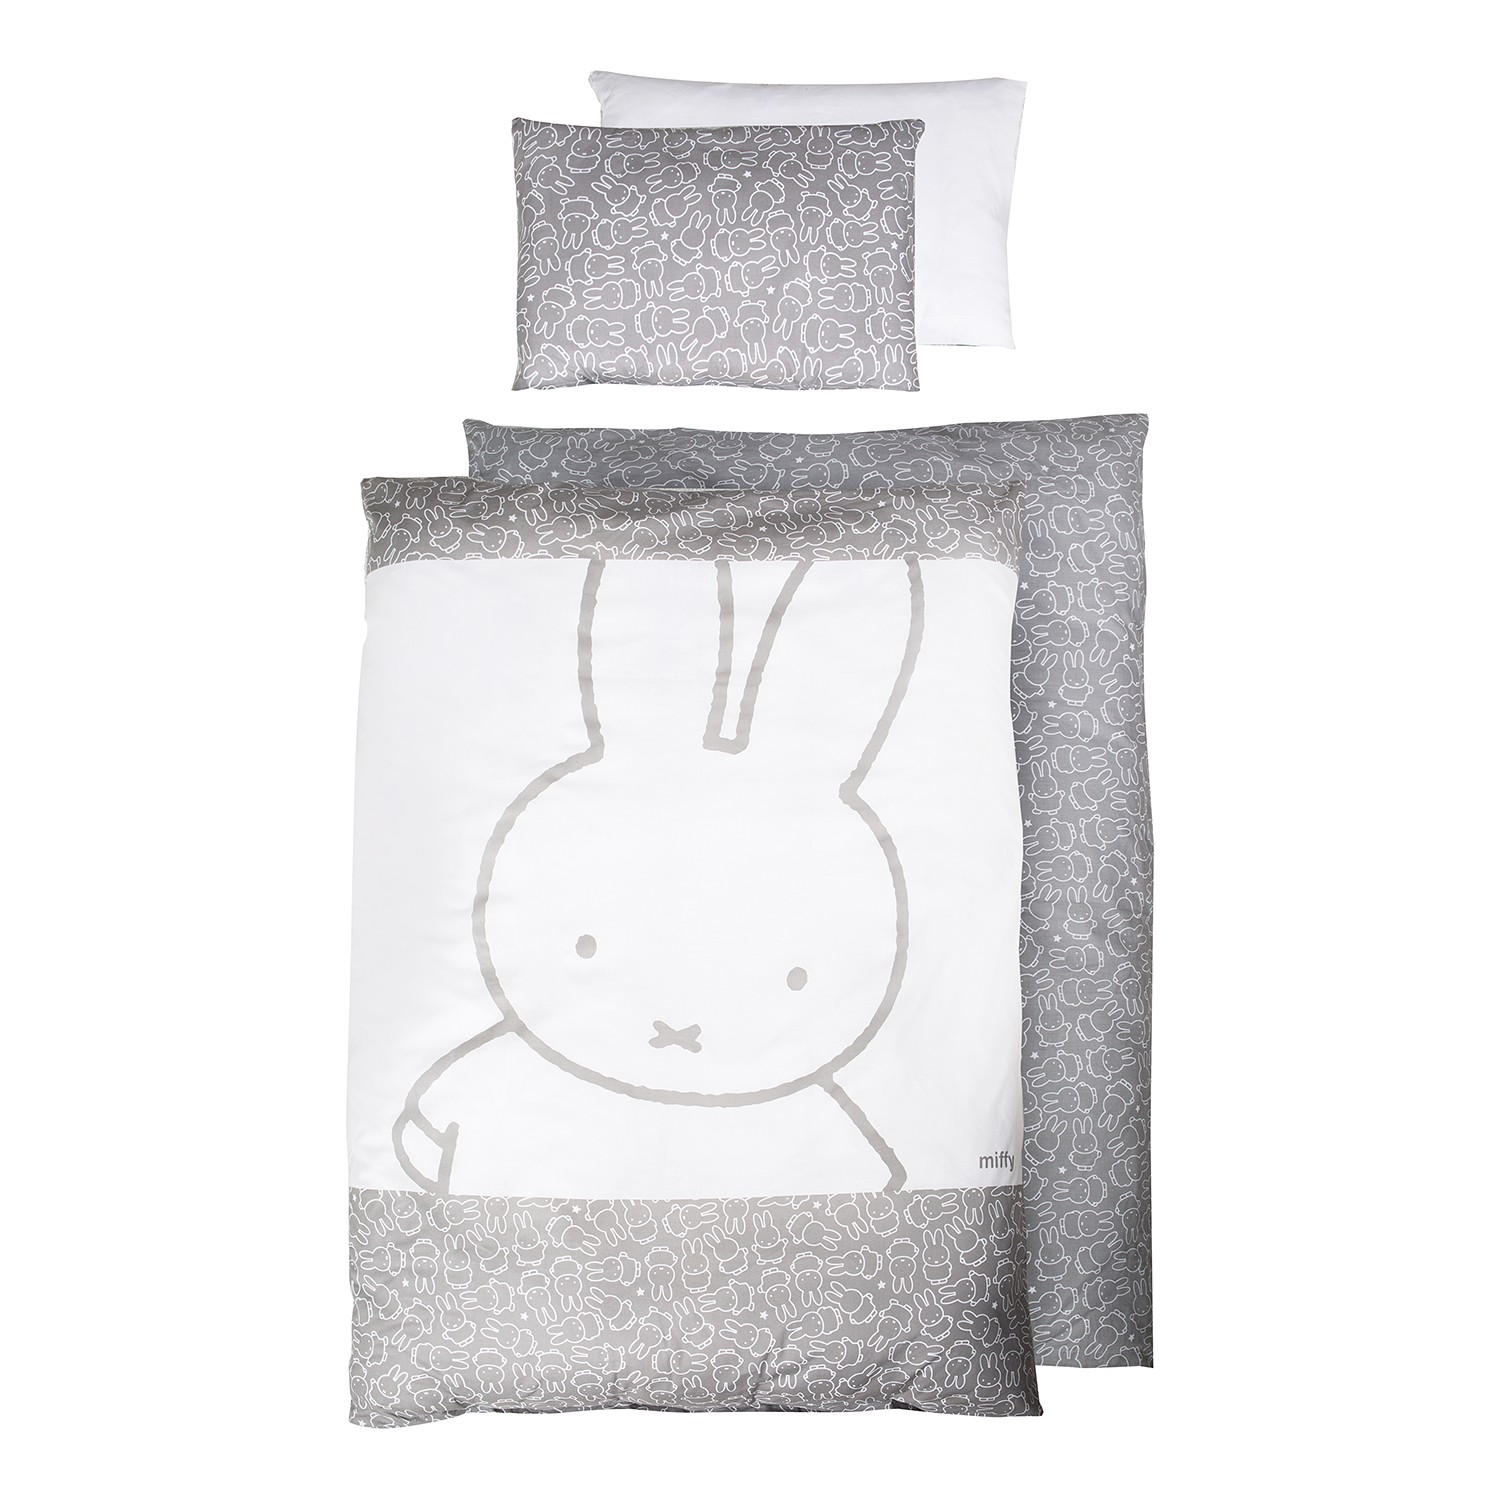 home24 Bettwaesche Miffy